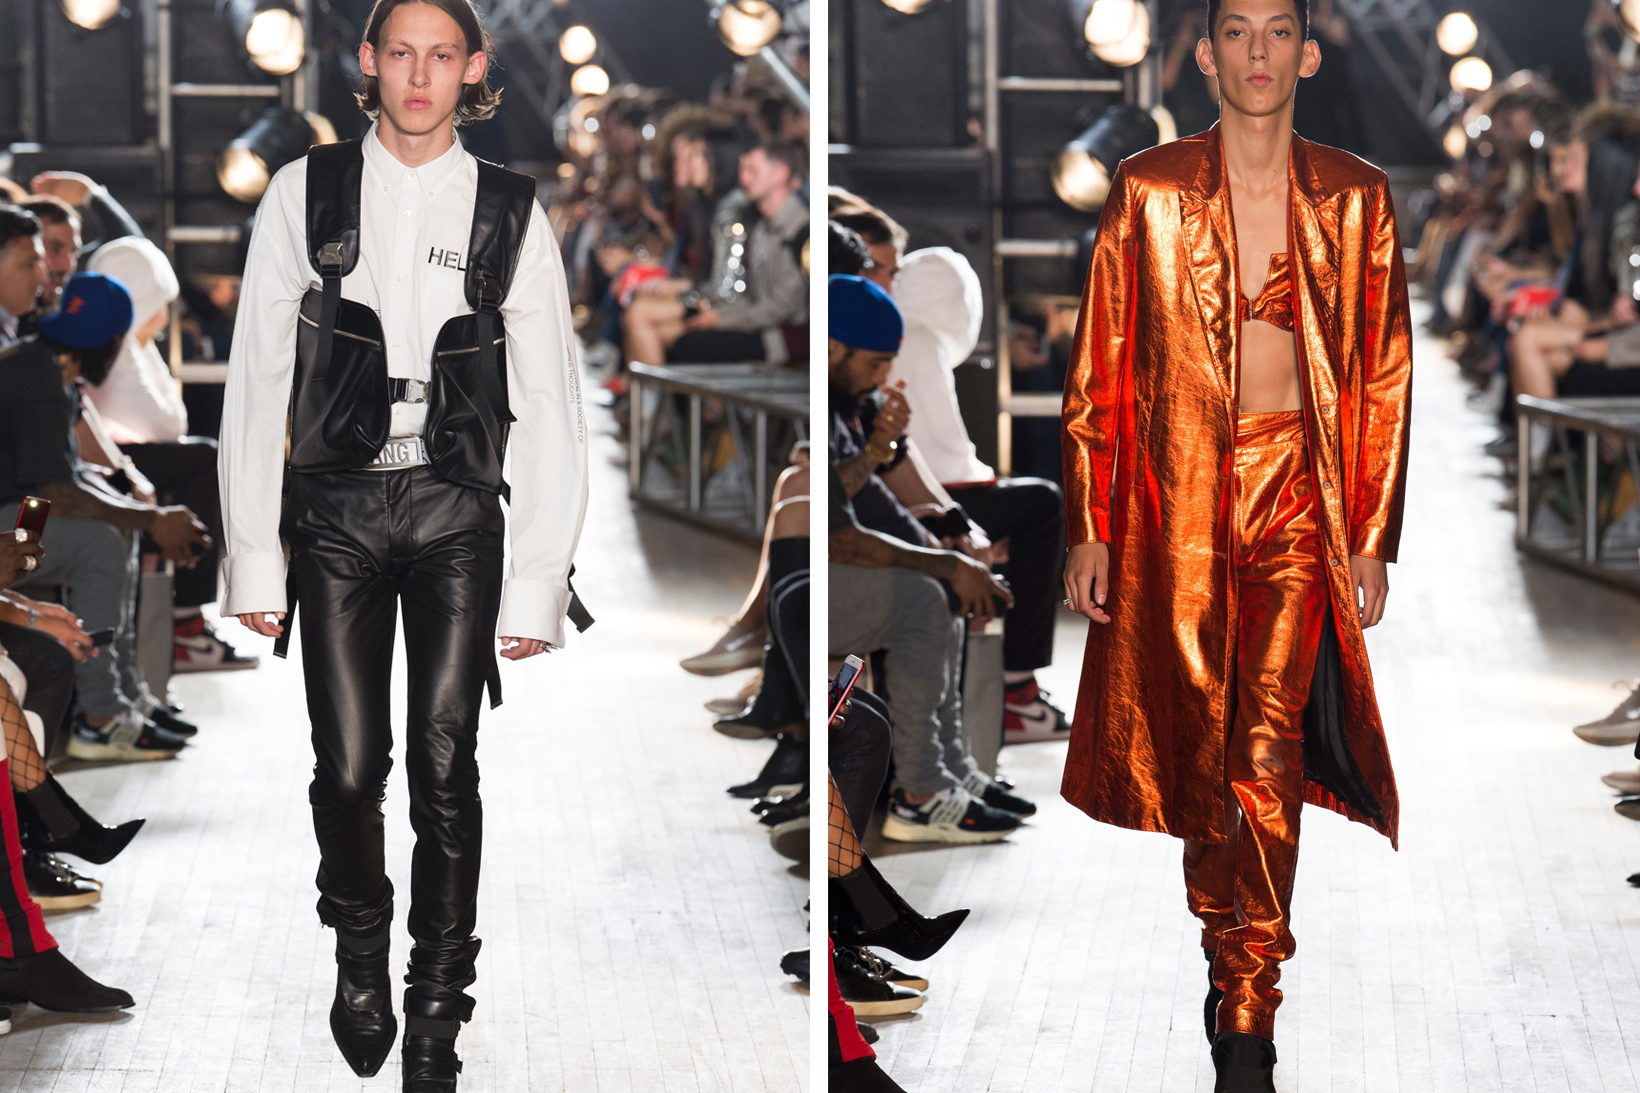 57585ddf52df New York Fashion Week Spring Summer 2018 Best Collections. Arguably one of  the week s buzziest affairs